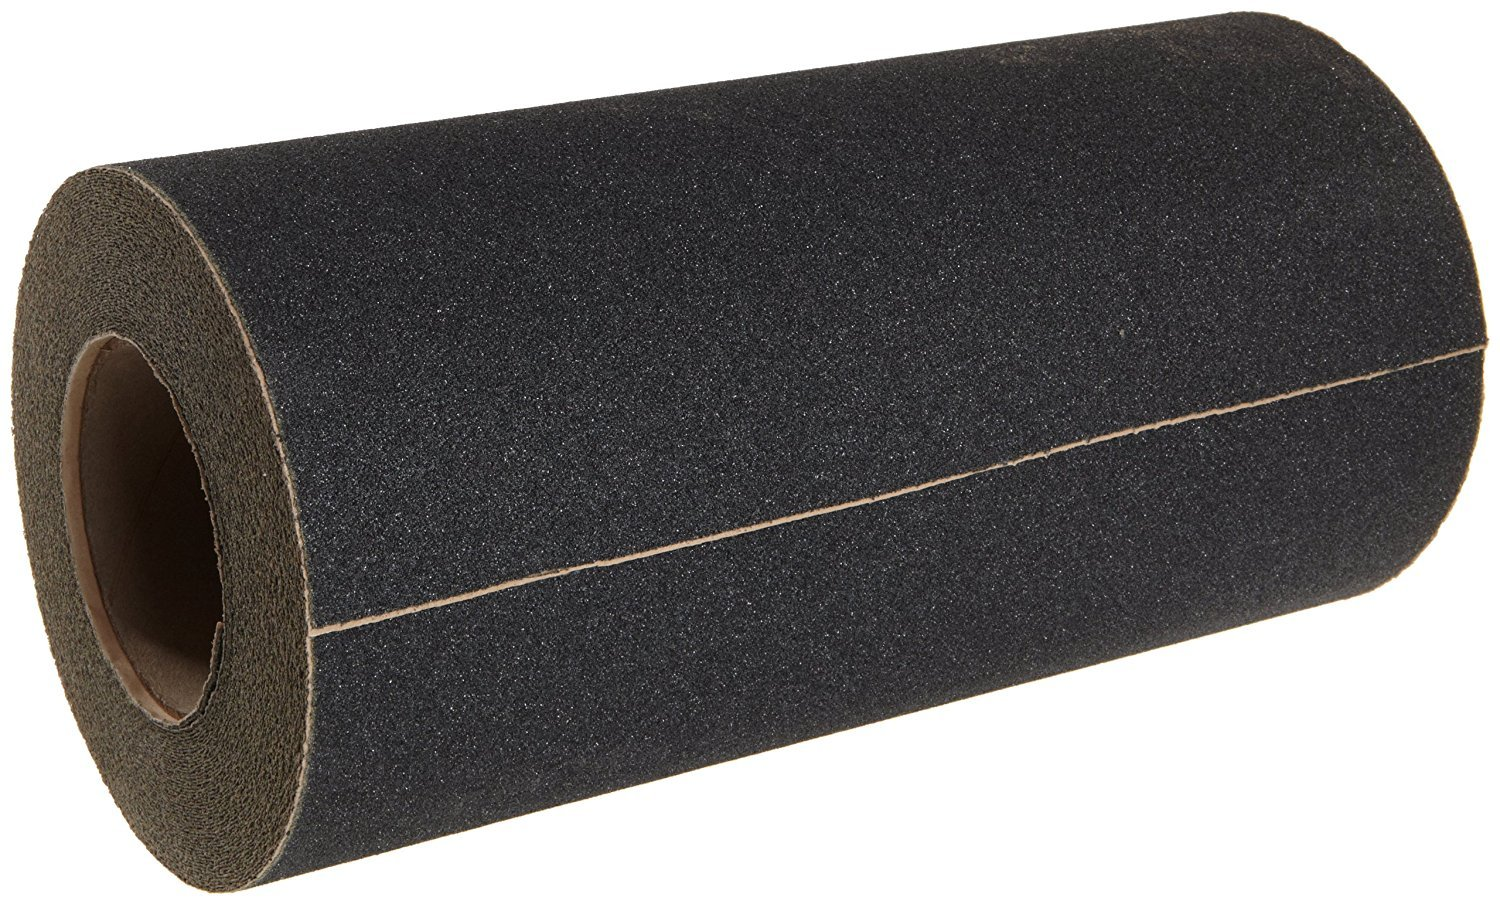 Safe Way Traction 12'' x 10' Black 80 Grit Anti Slip Tape Non Skid Abrasive Safety Tape Steps Stairs Ladders Forklifts Ramps Boats 3100-12-10 by Safe Way Traction